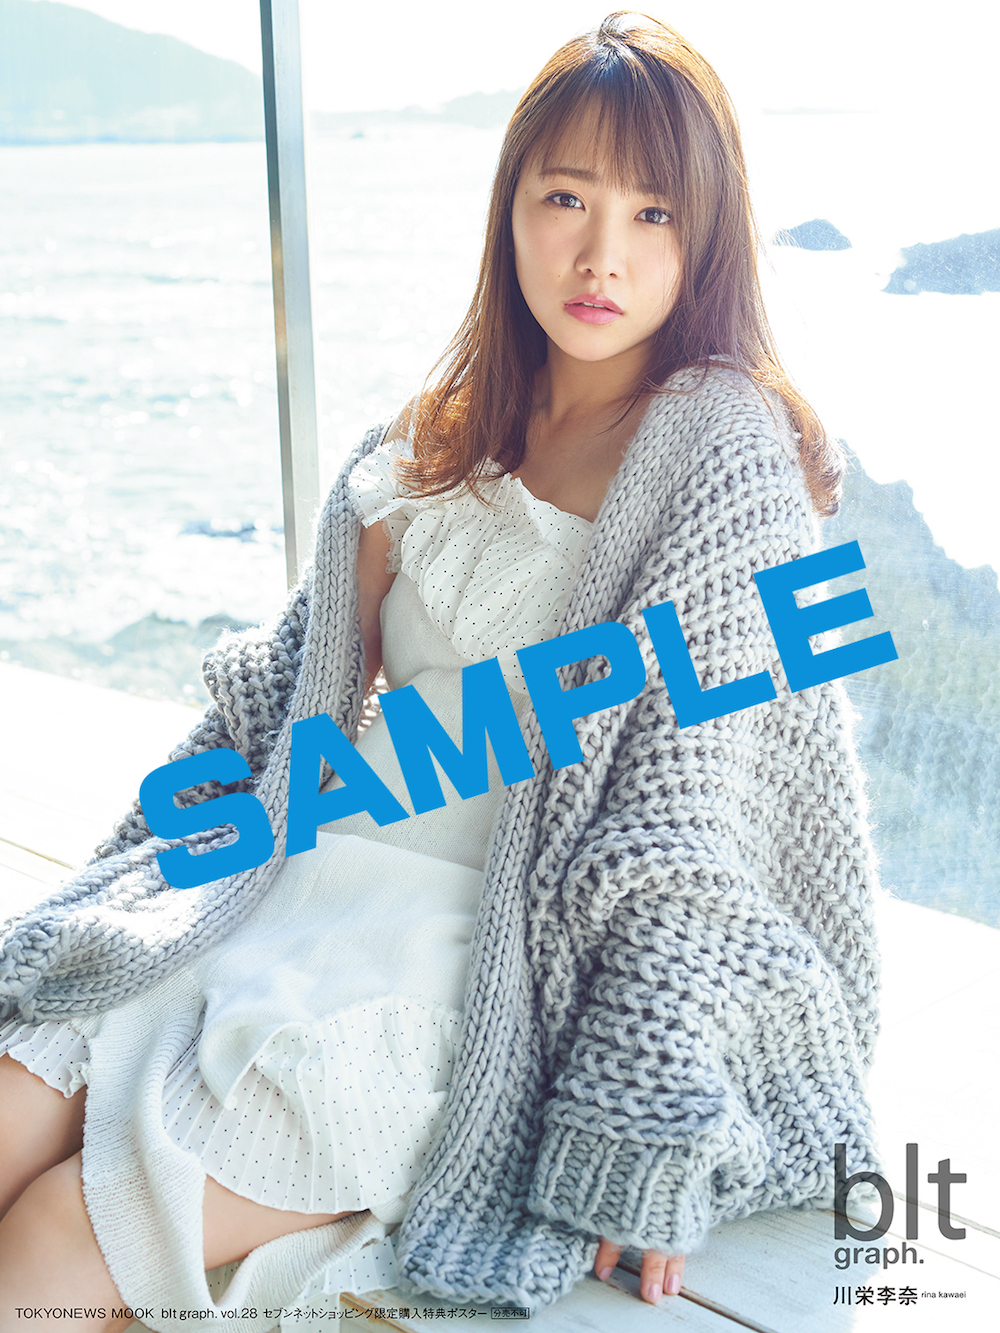 川栄李奈「blt graph.vol.28 」